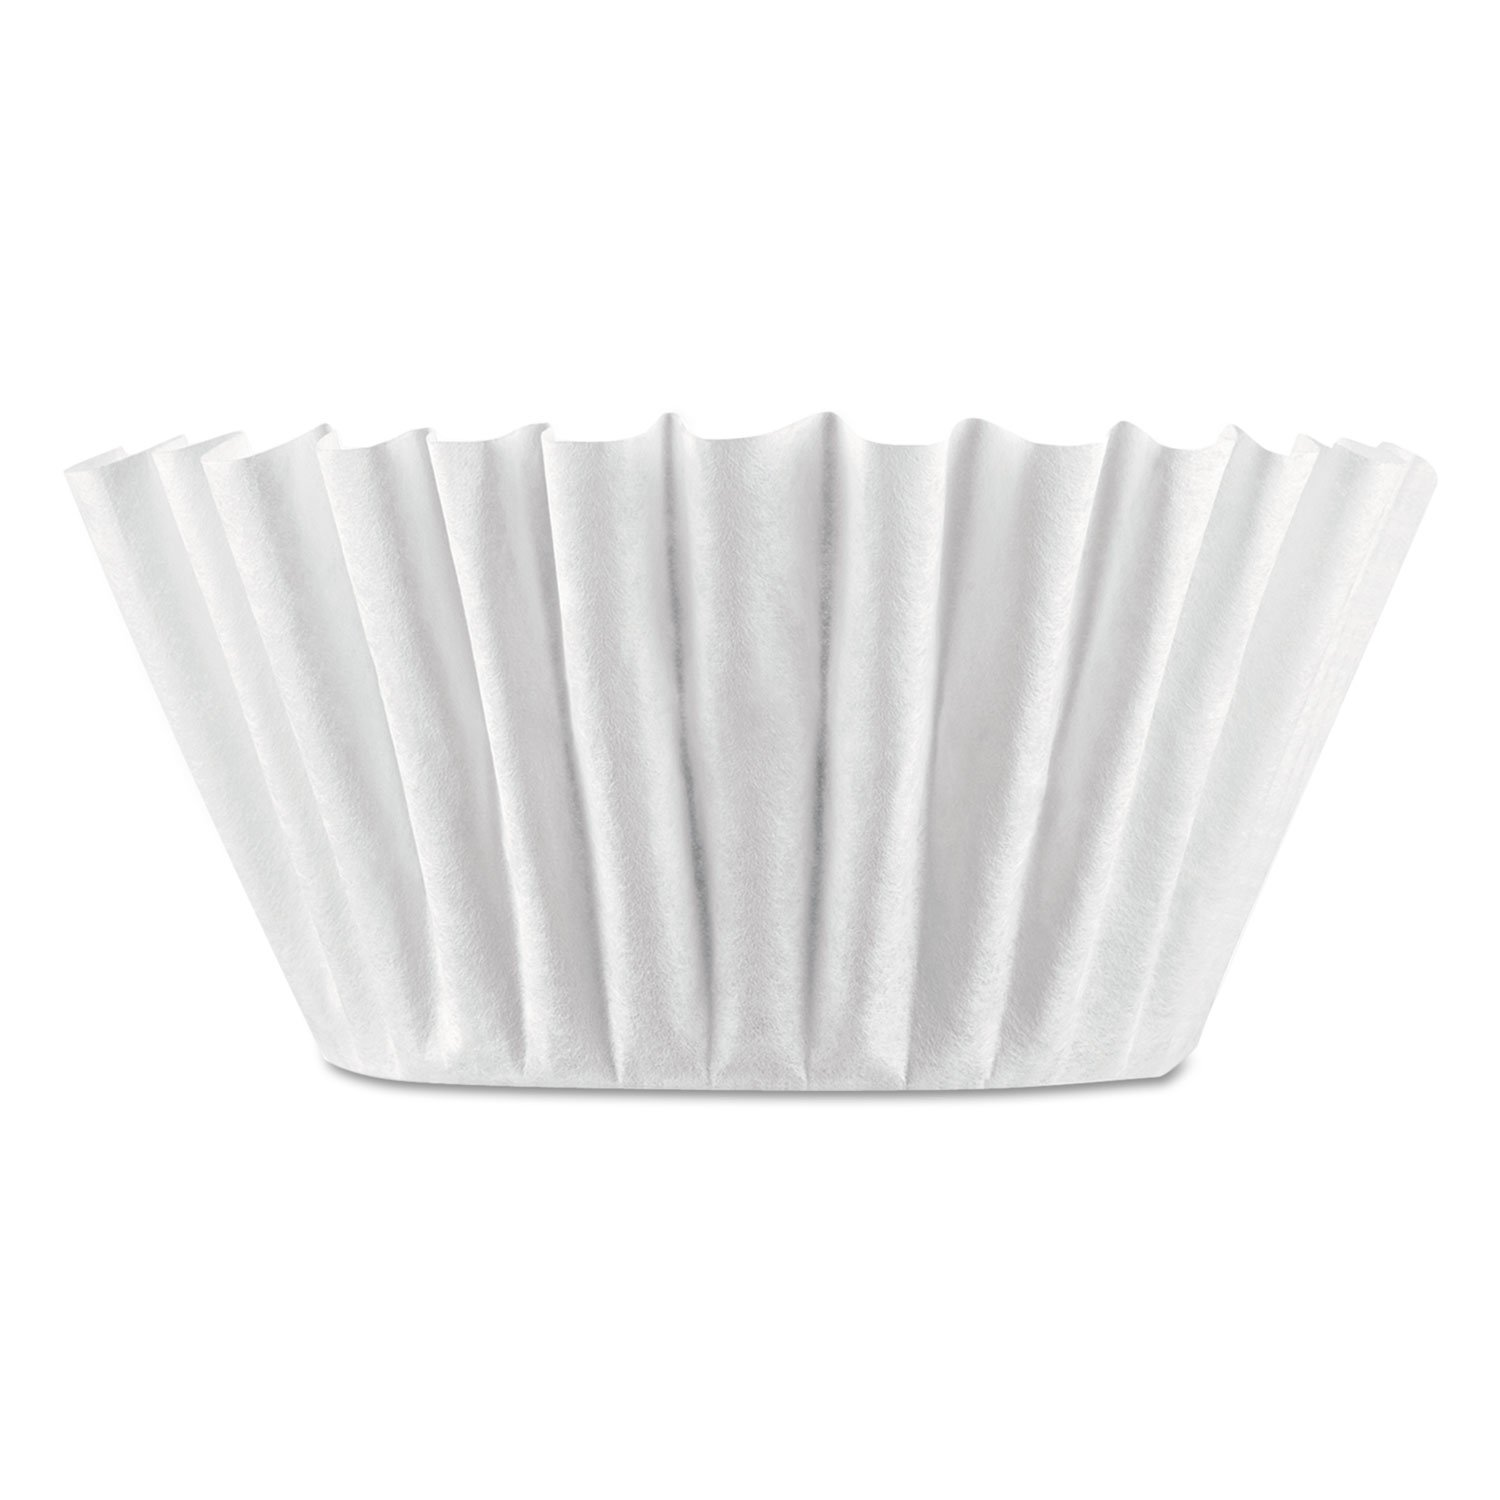 B004E2PUMS Coffee Filters, 8/12-Cup Size, 100/Pack 61LQCNqUIvL